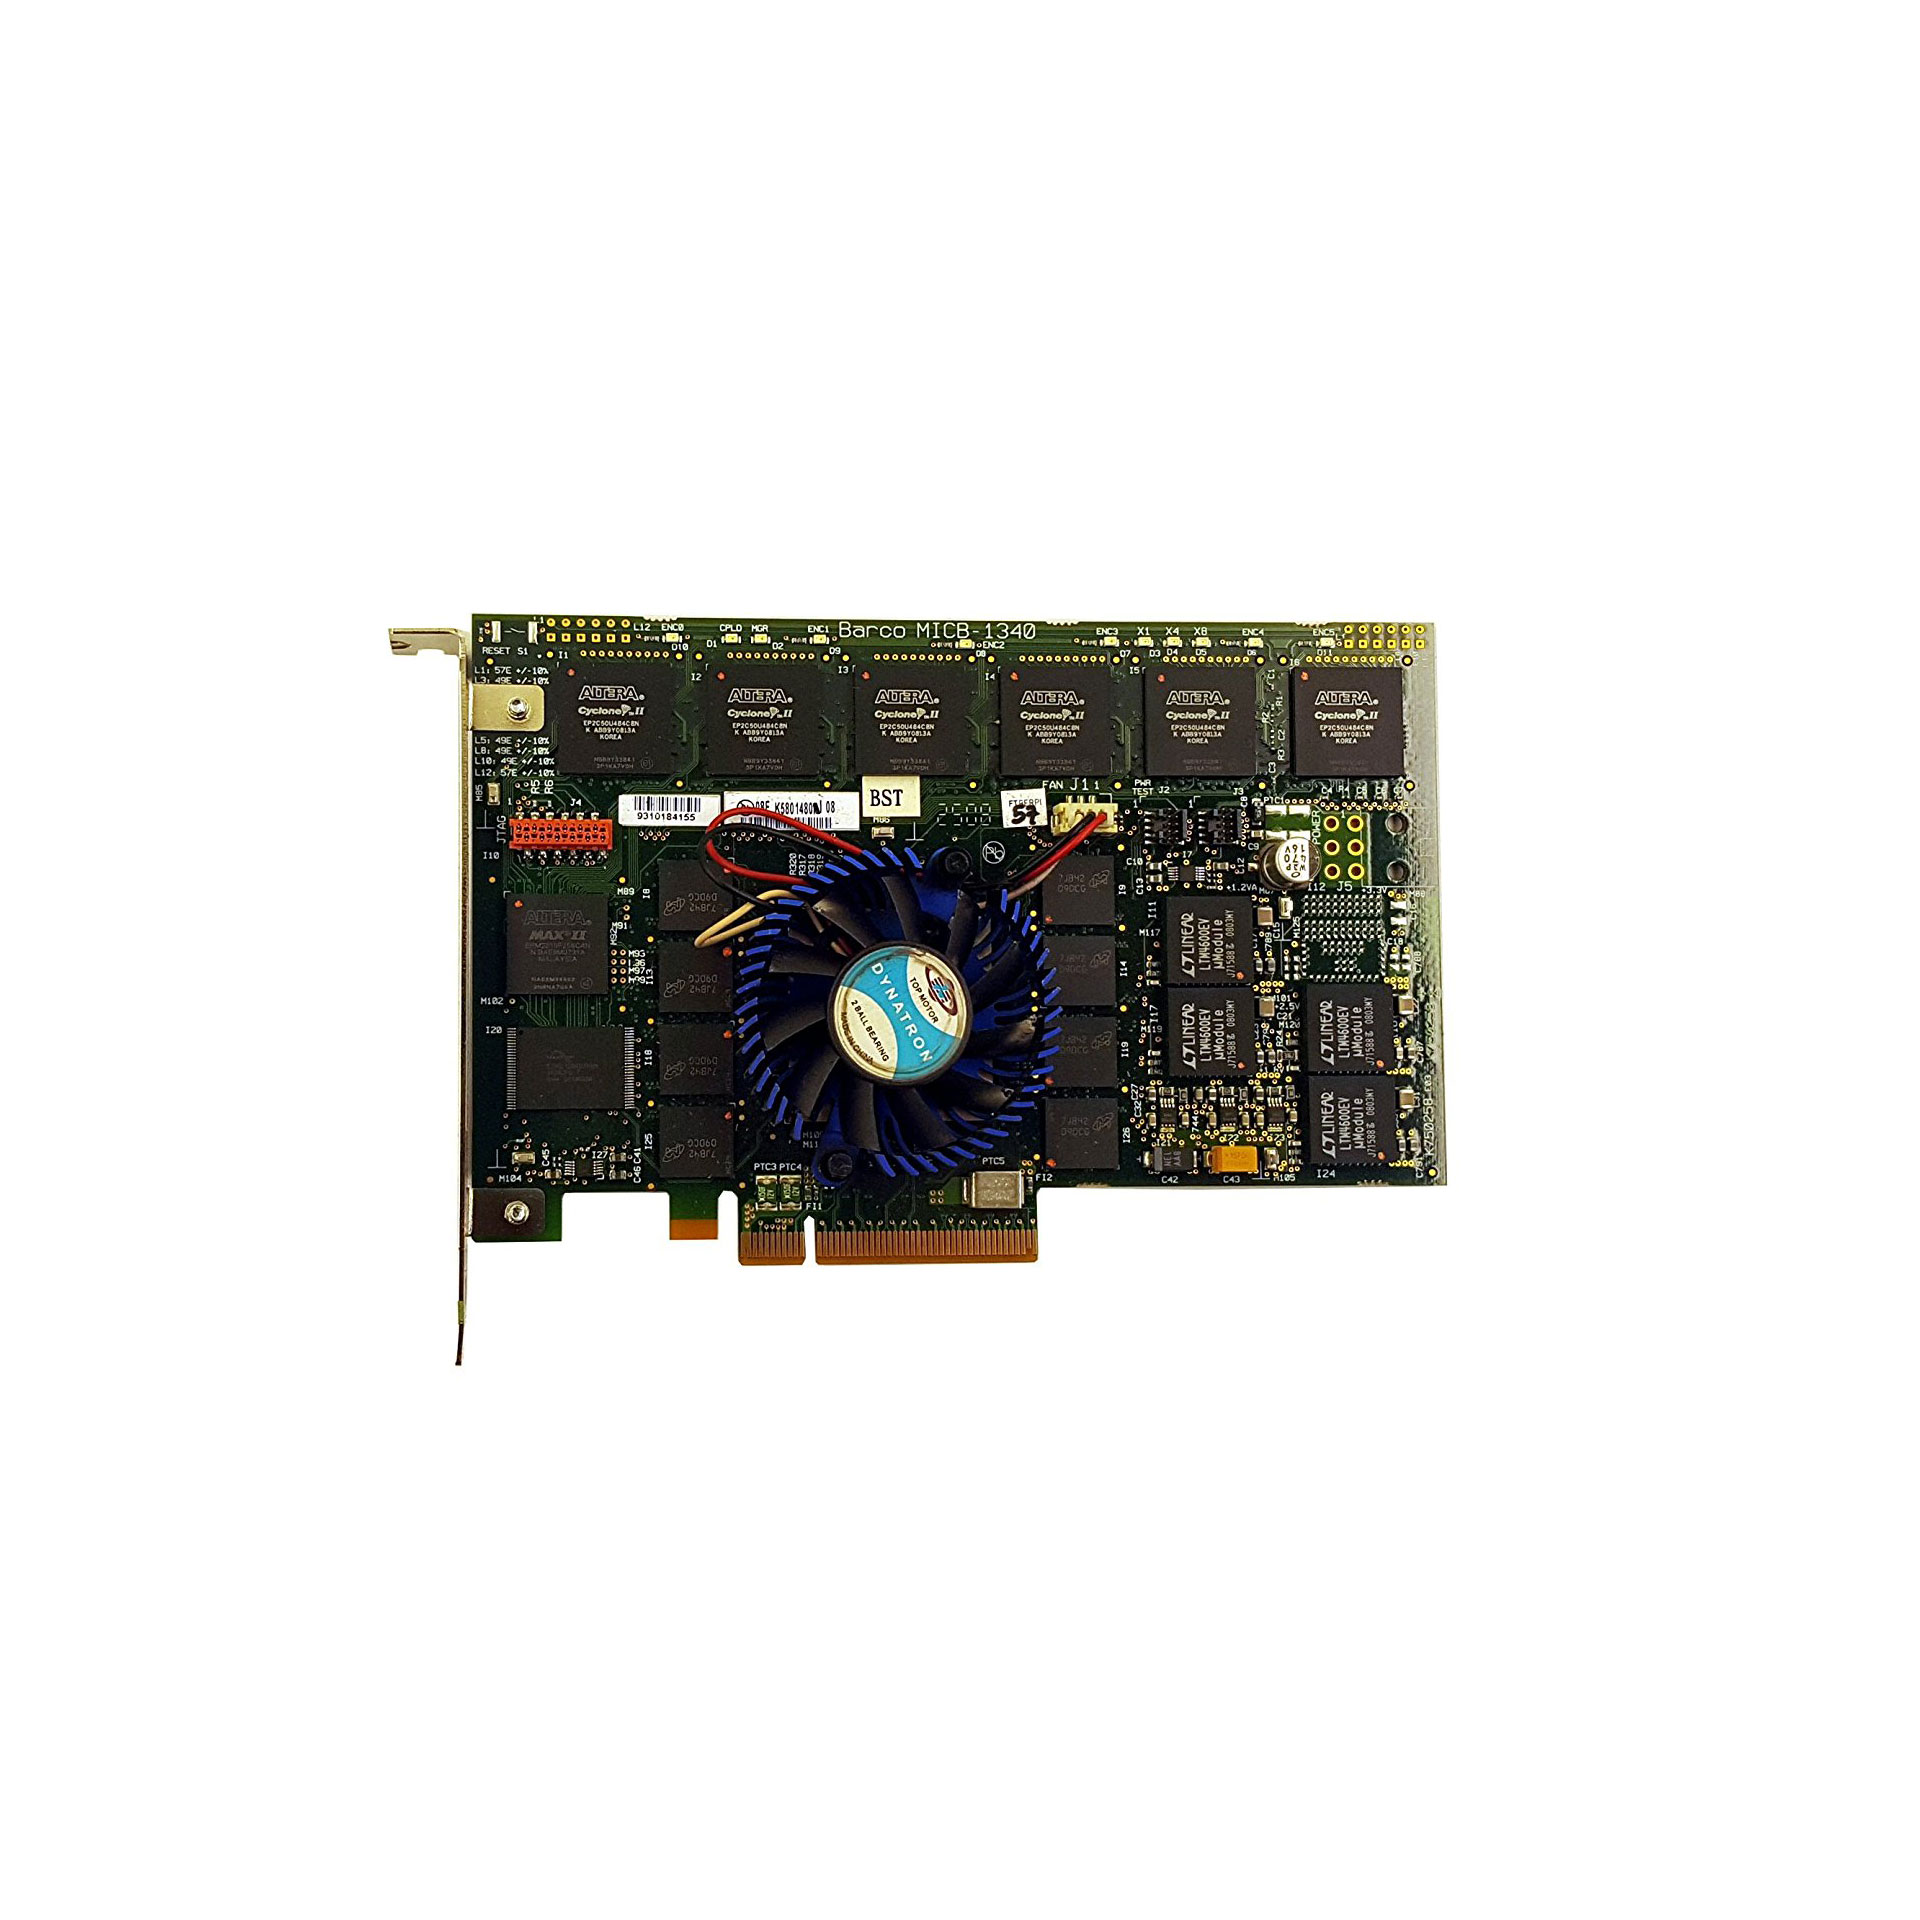 Barco MICB-1340 Image Compression Card K5801480